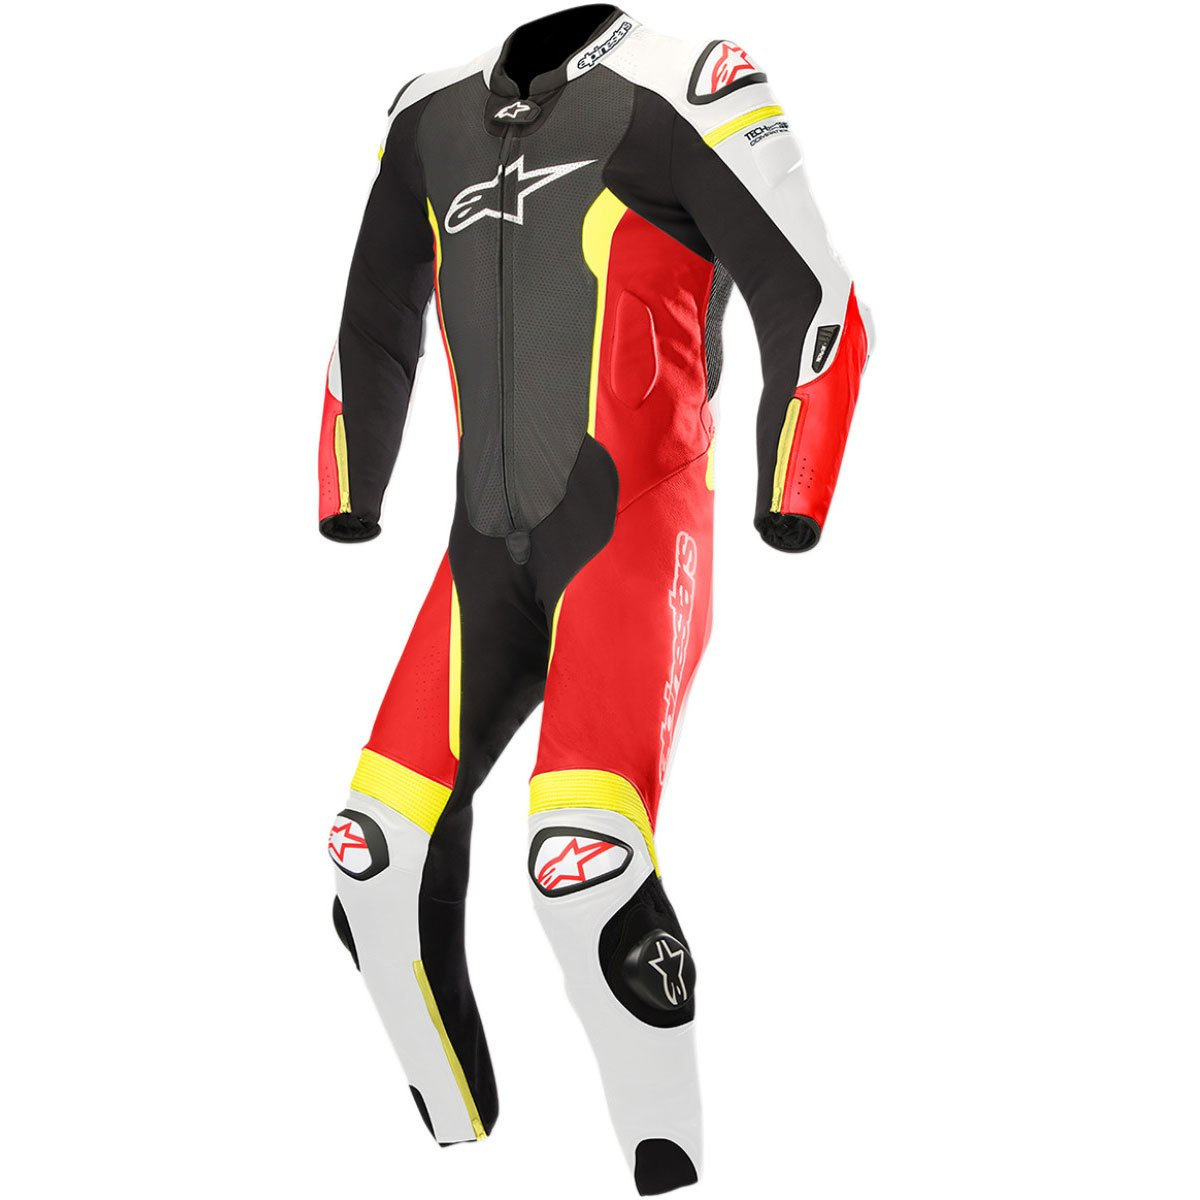 Alpinestars Missile Men's 1-Piece Street Race Suits - Black/White/Red/Yellow / 58